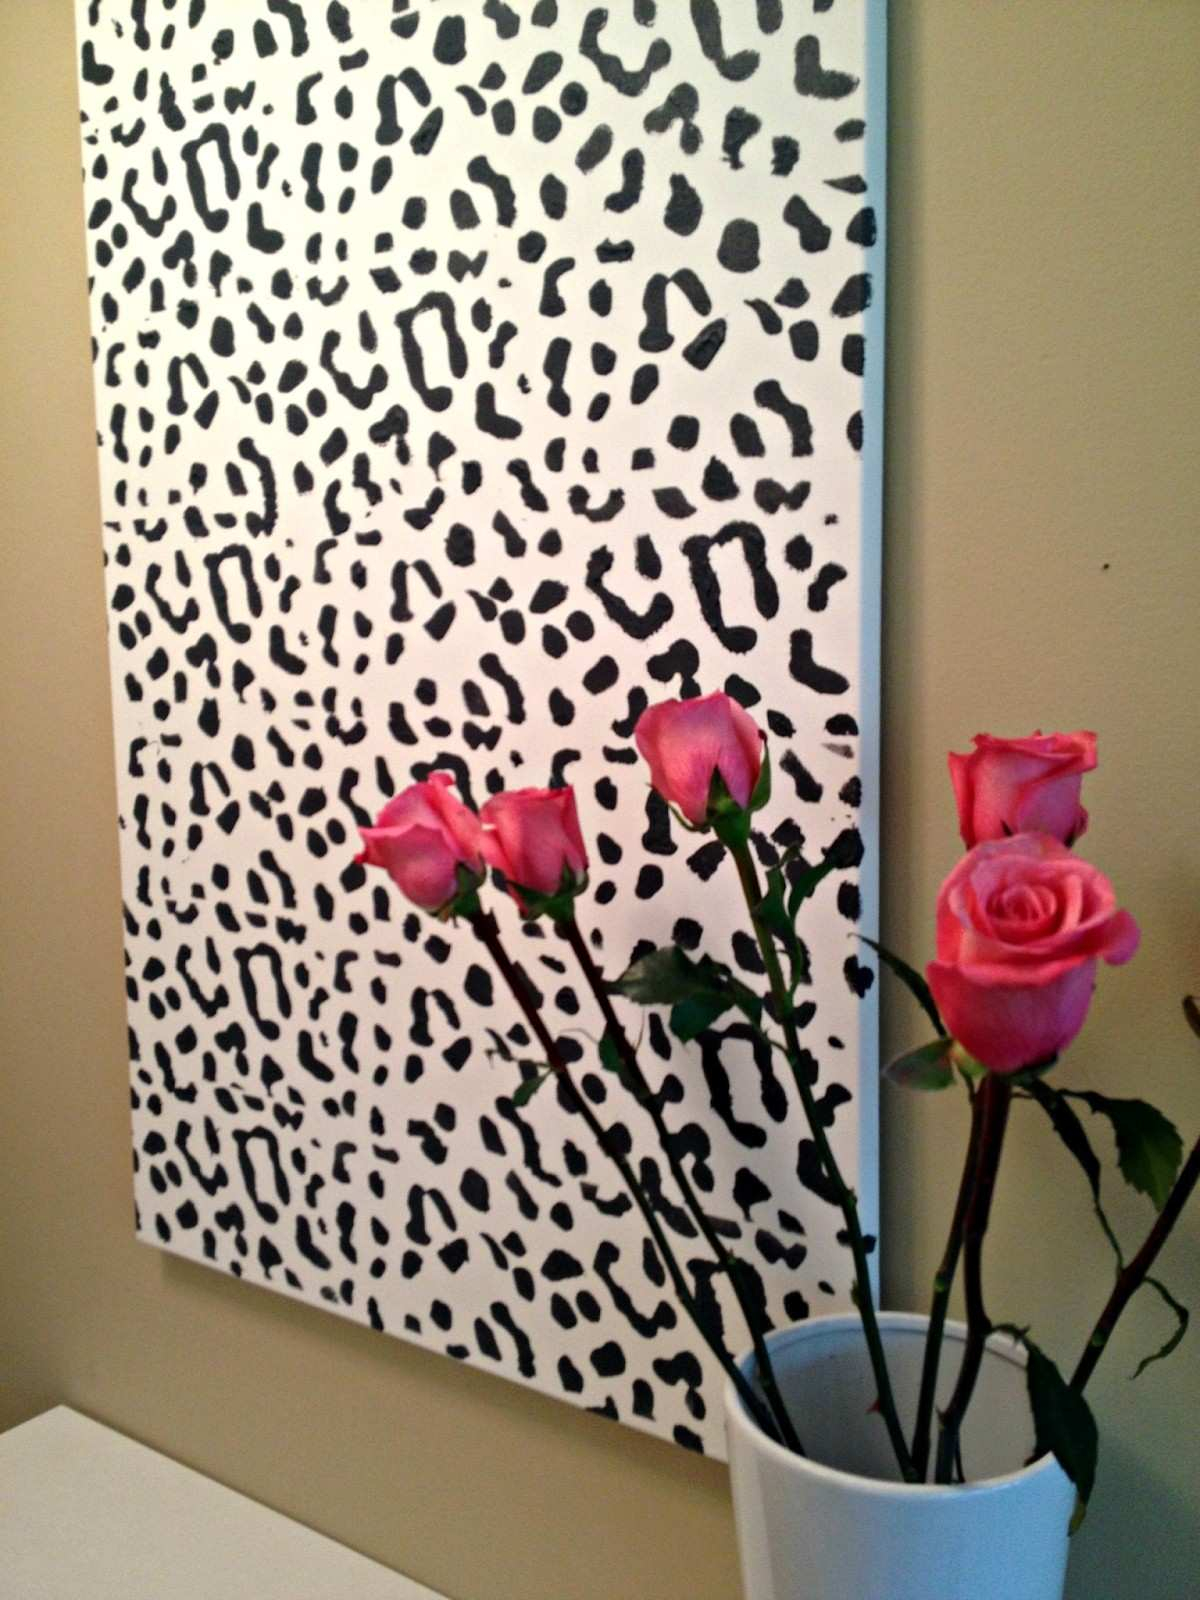 Gallery of Leopard Print Wall Art Showing 1 of 15 s